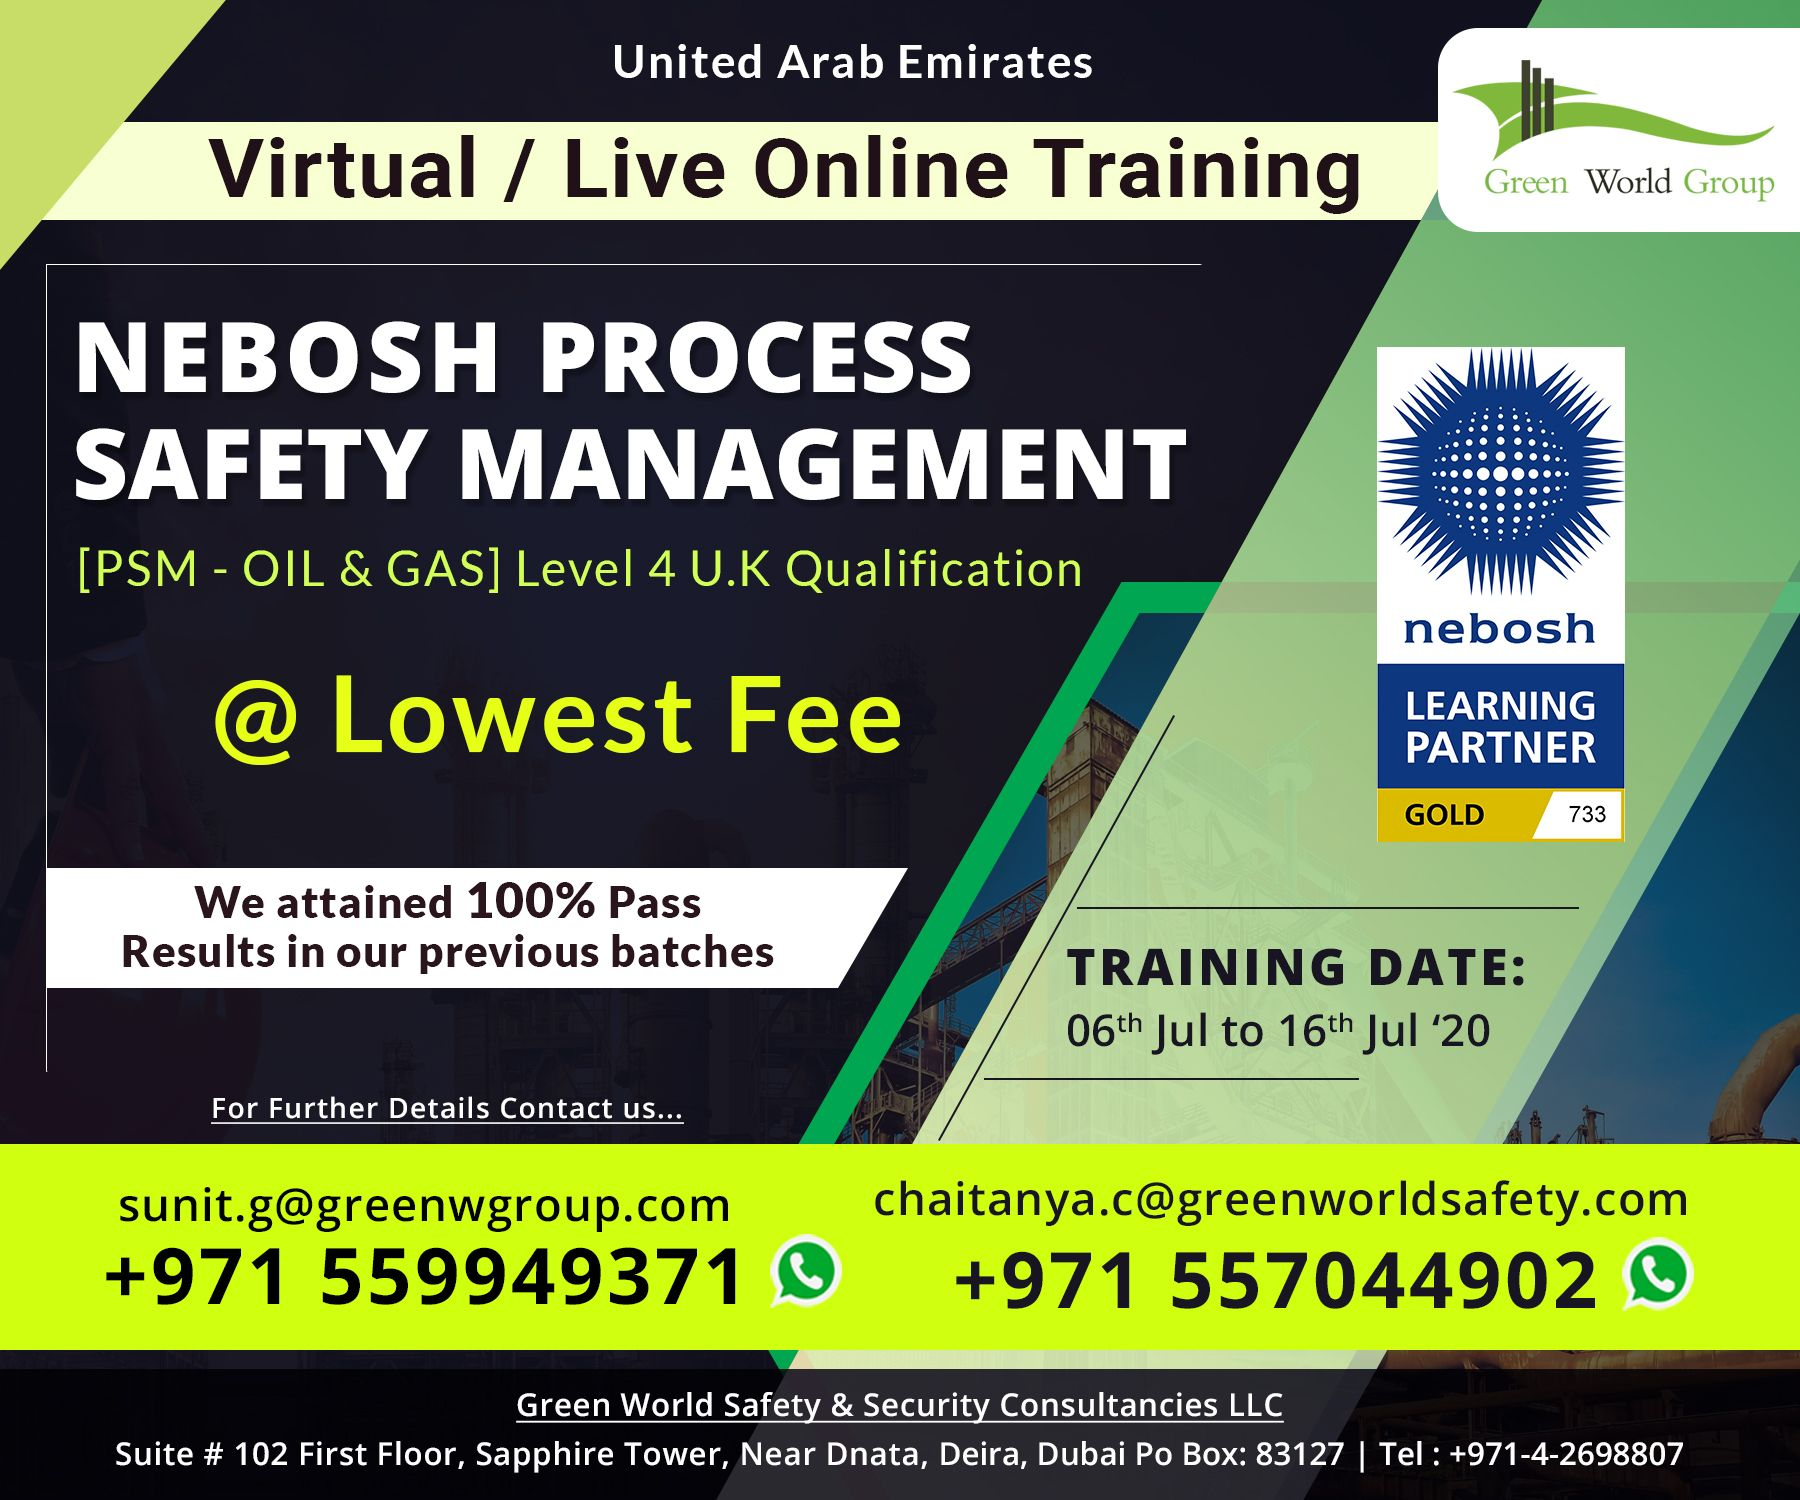 Pin on Join Nebosh PSM / Virtual Live Online with GWG